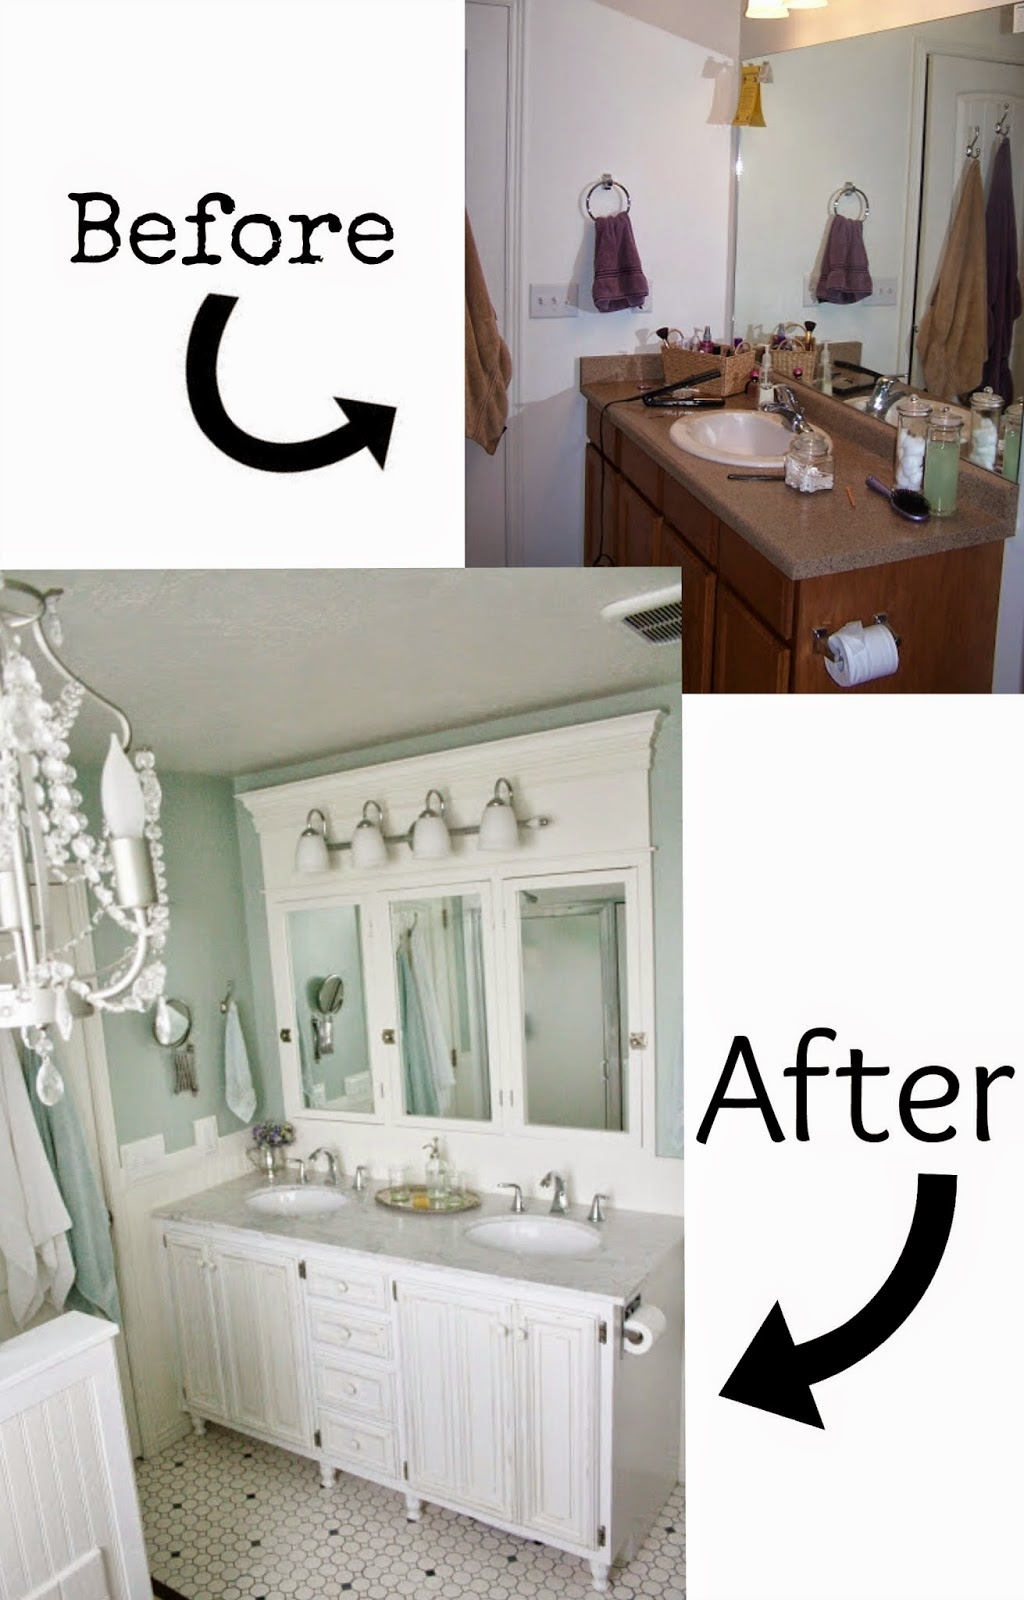 Updating Existing Bathroom Cabinets